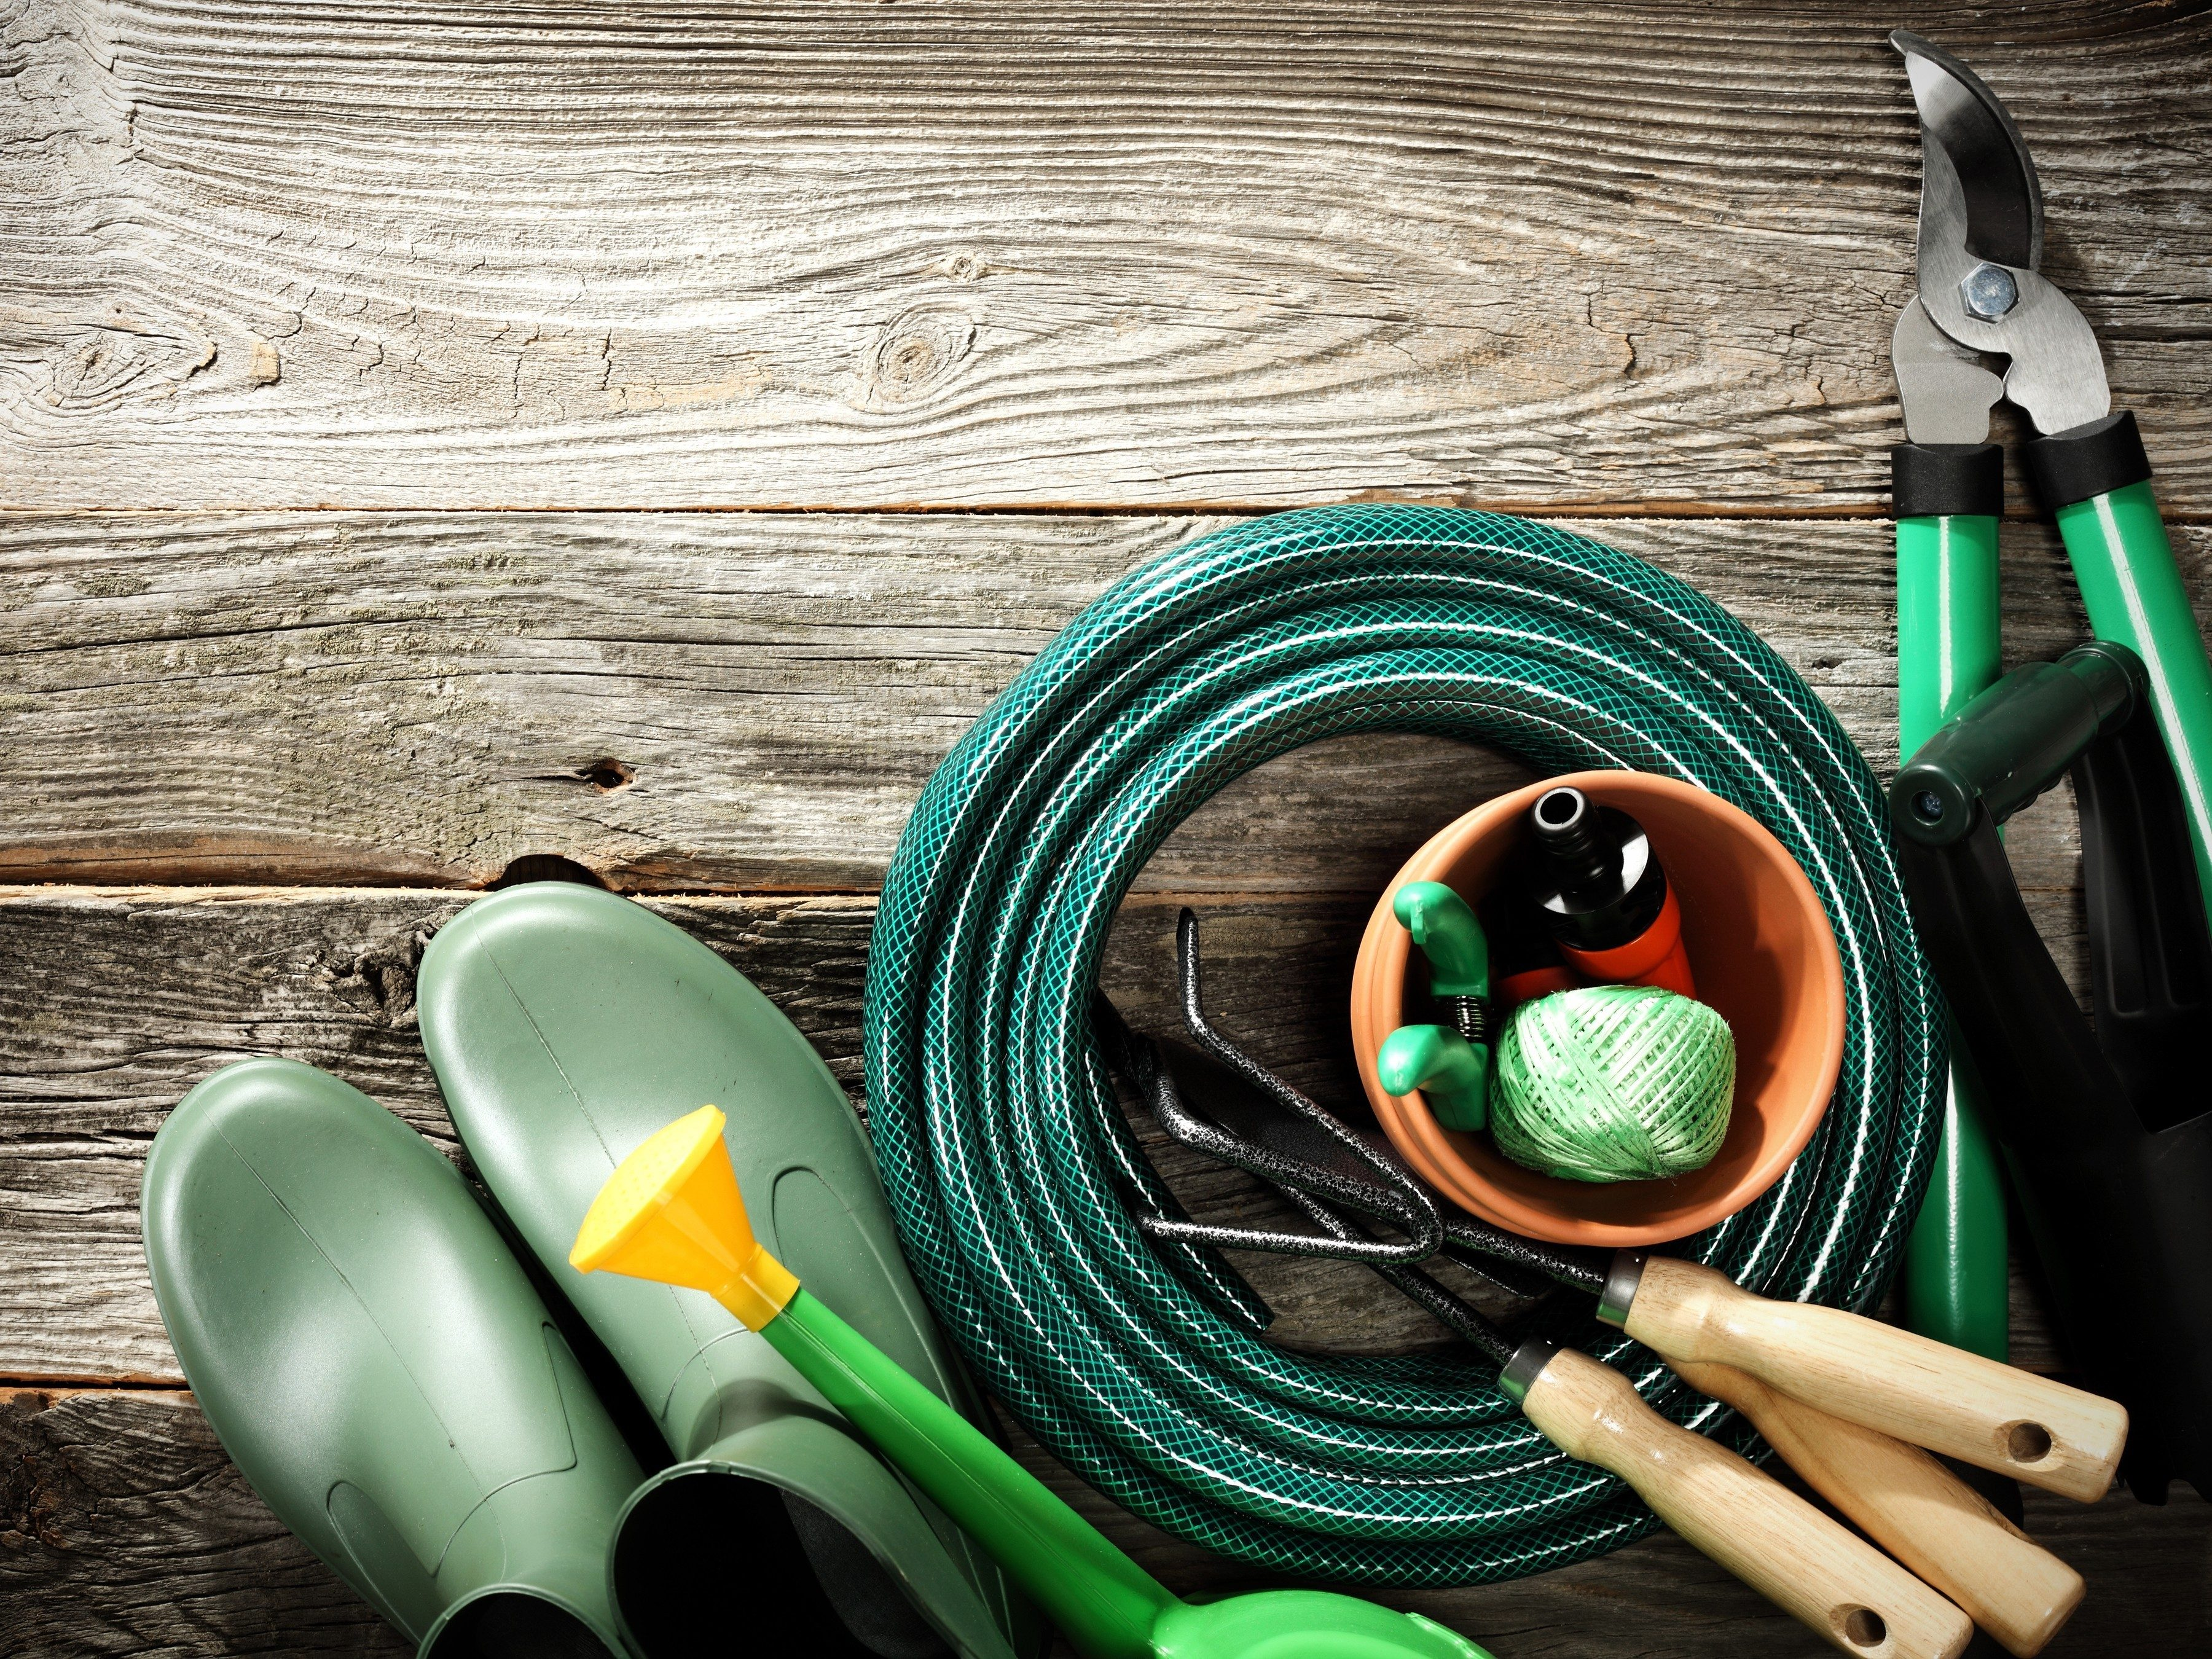 3. Keep Garden Tools Handy